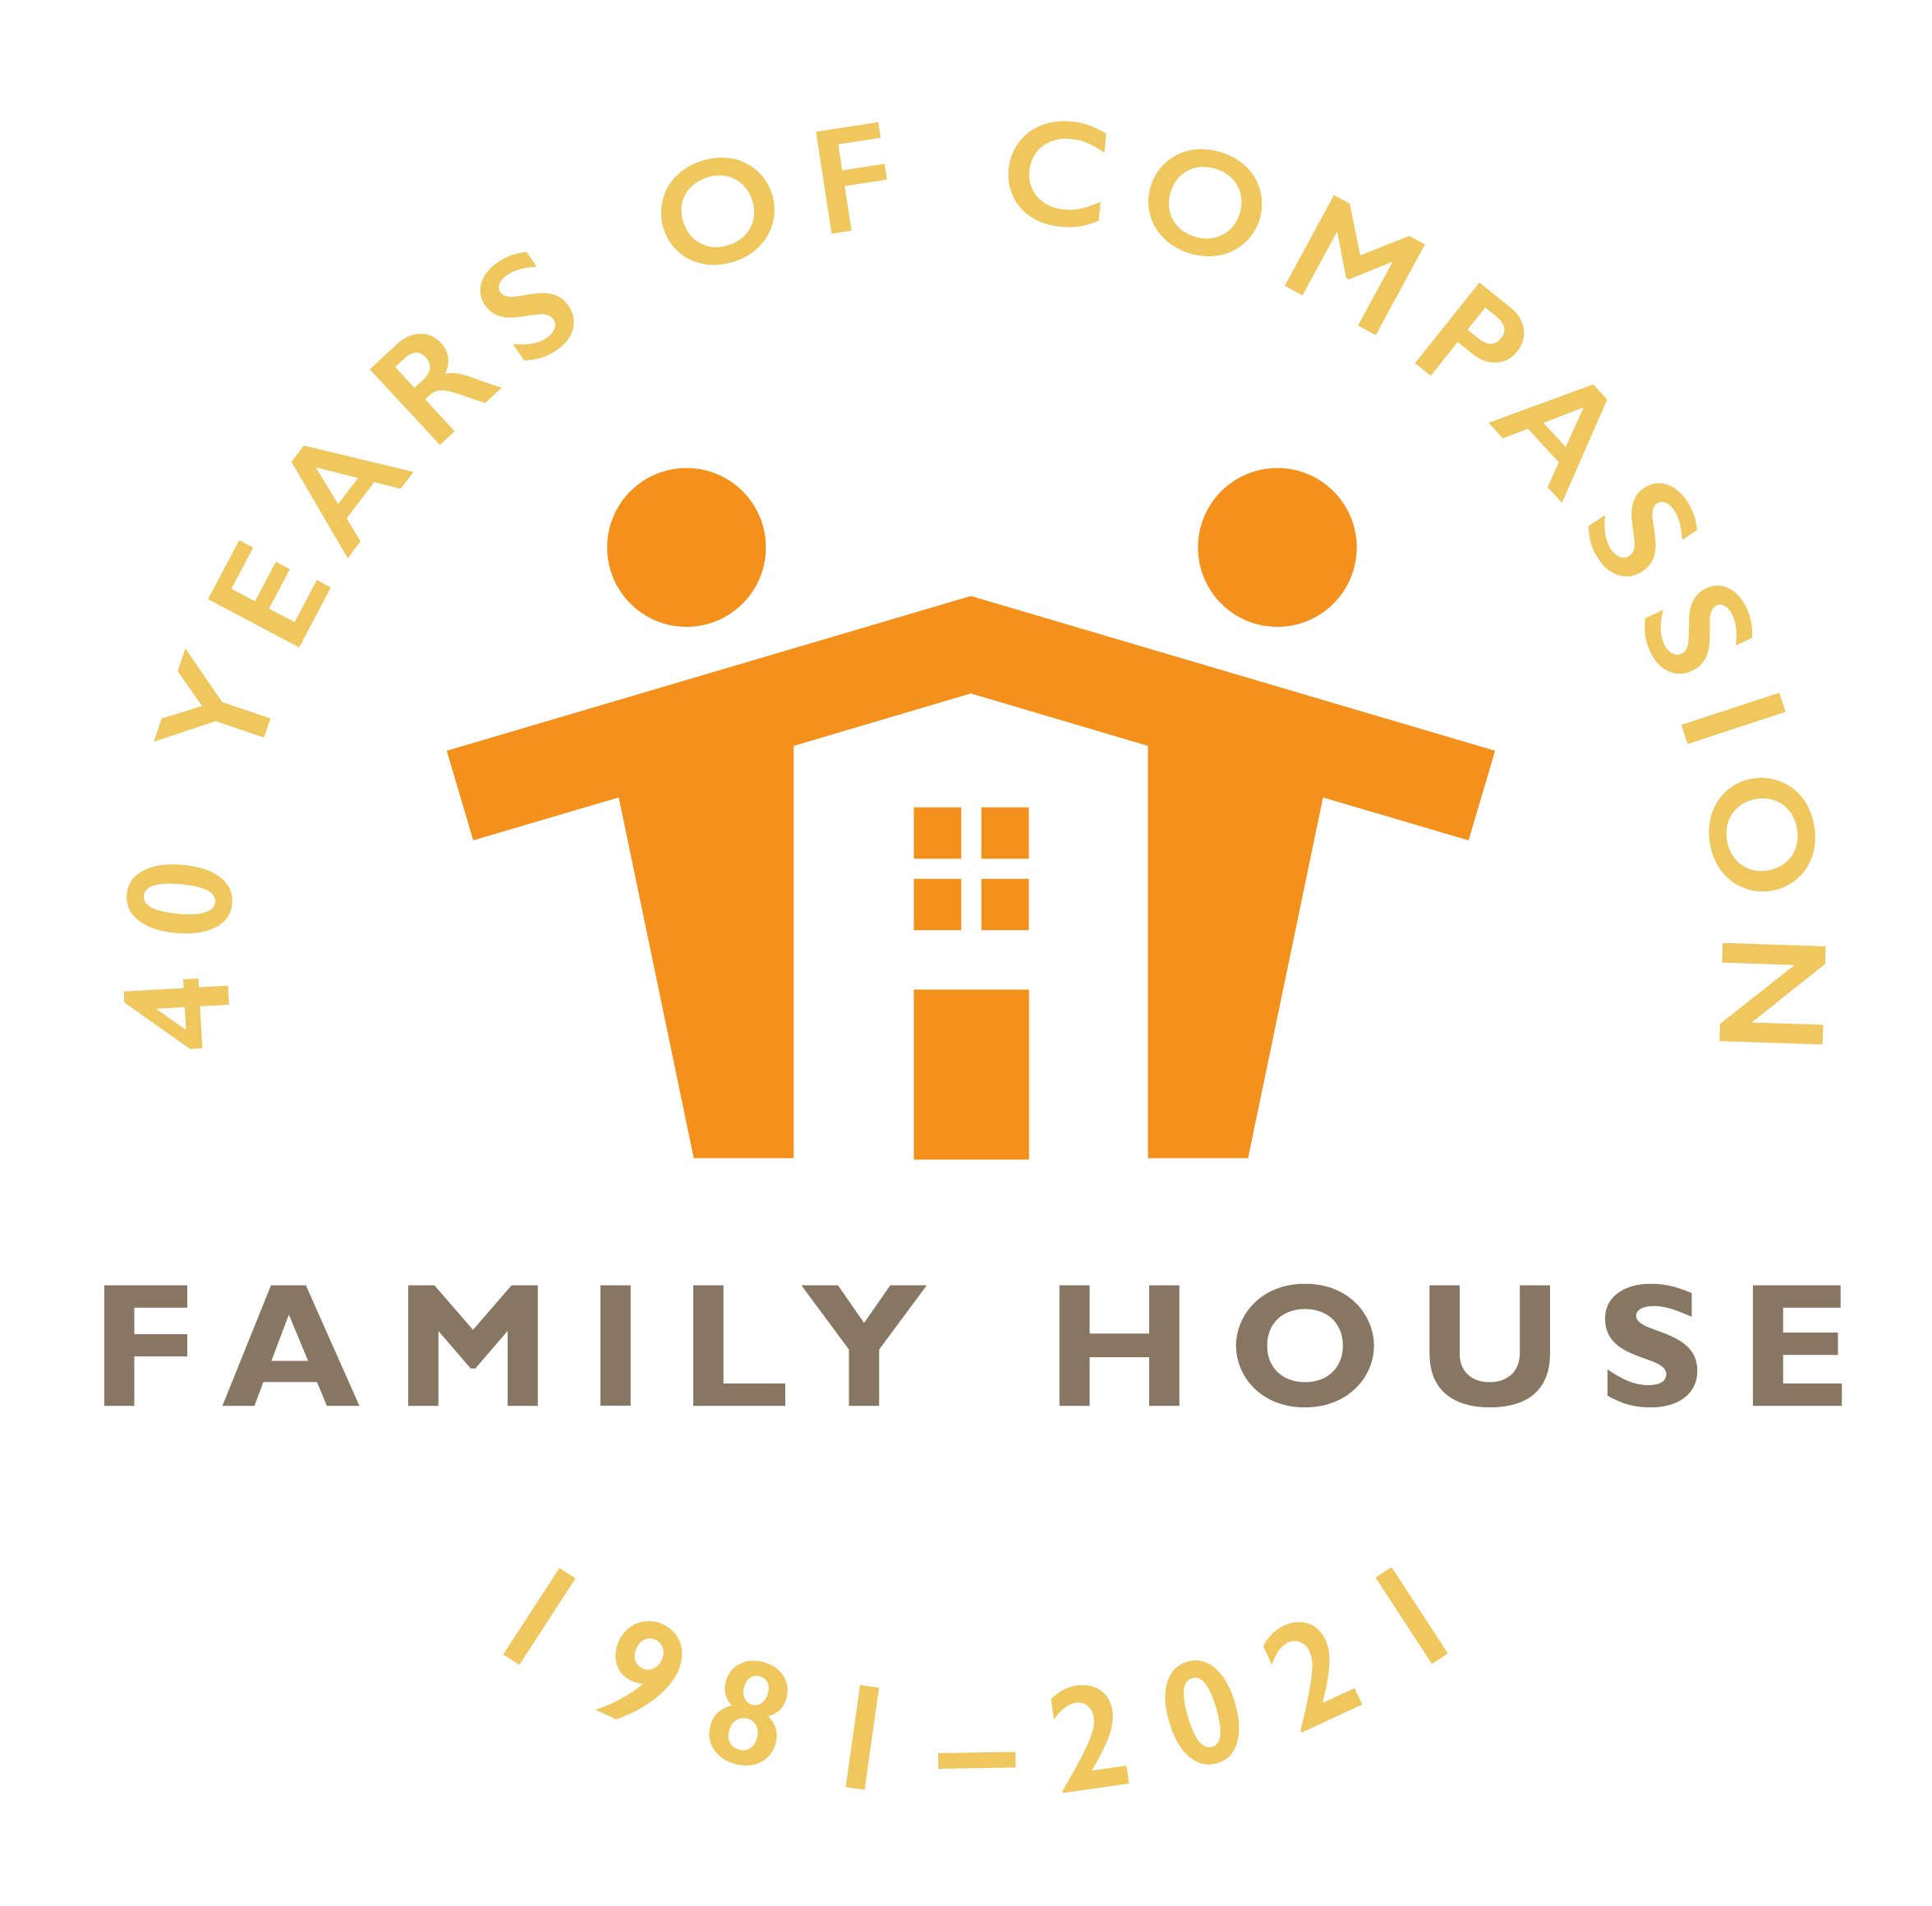 Family House Logo Celebrating 40 years of compassion 1981-2021